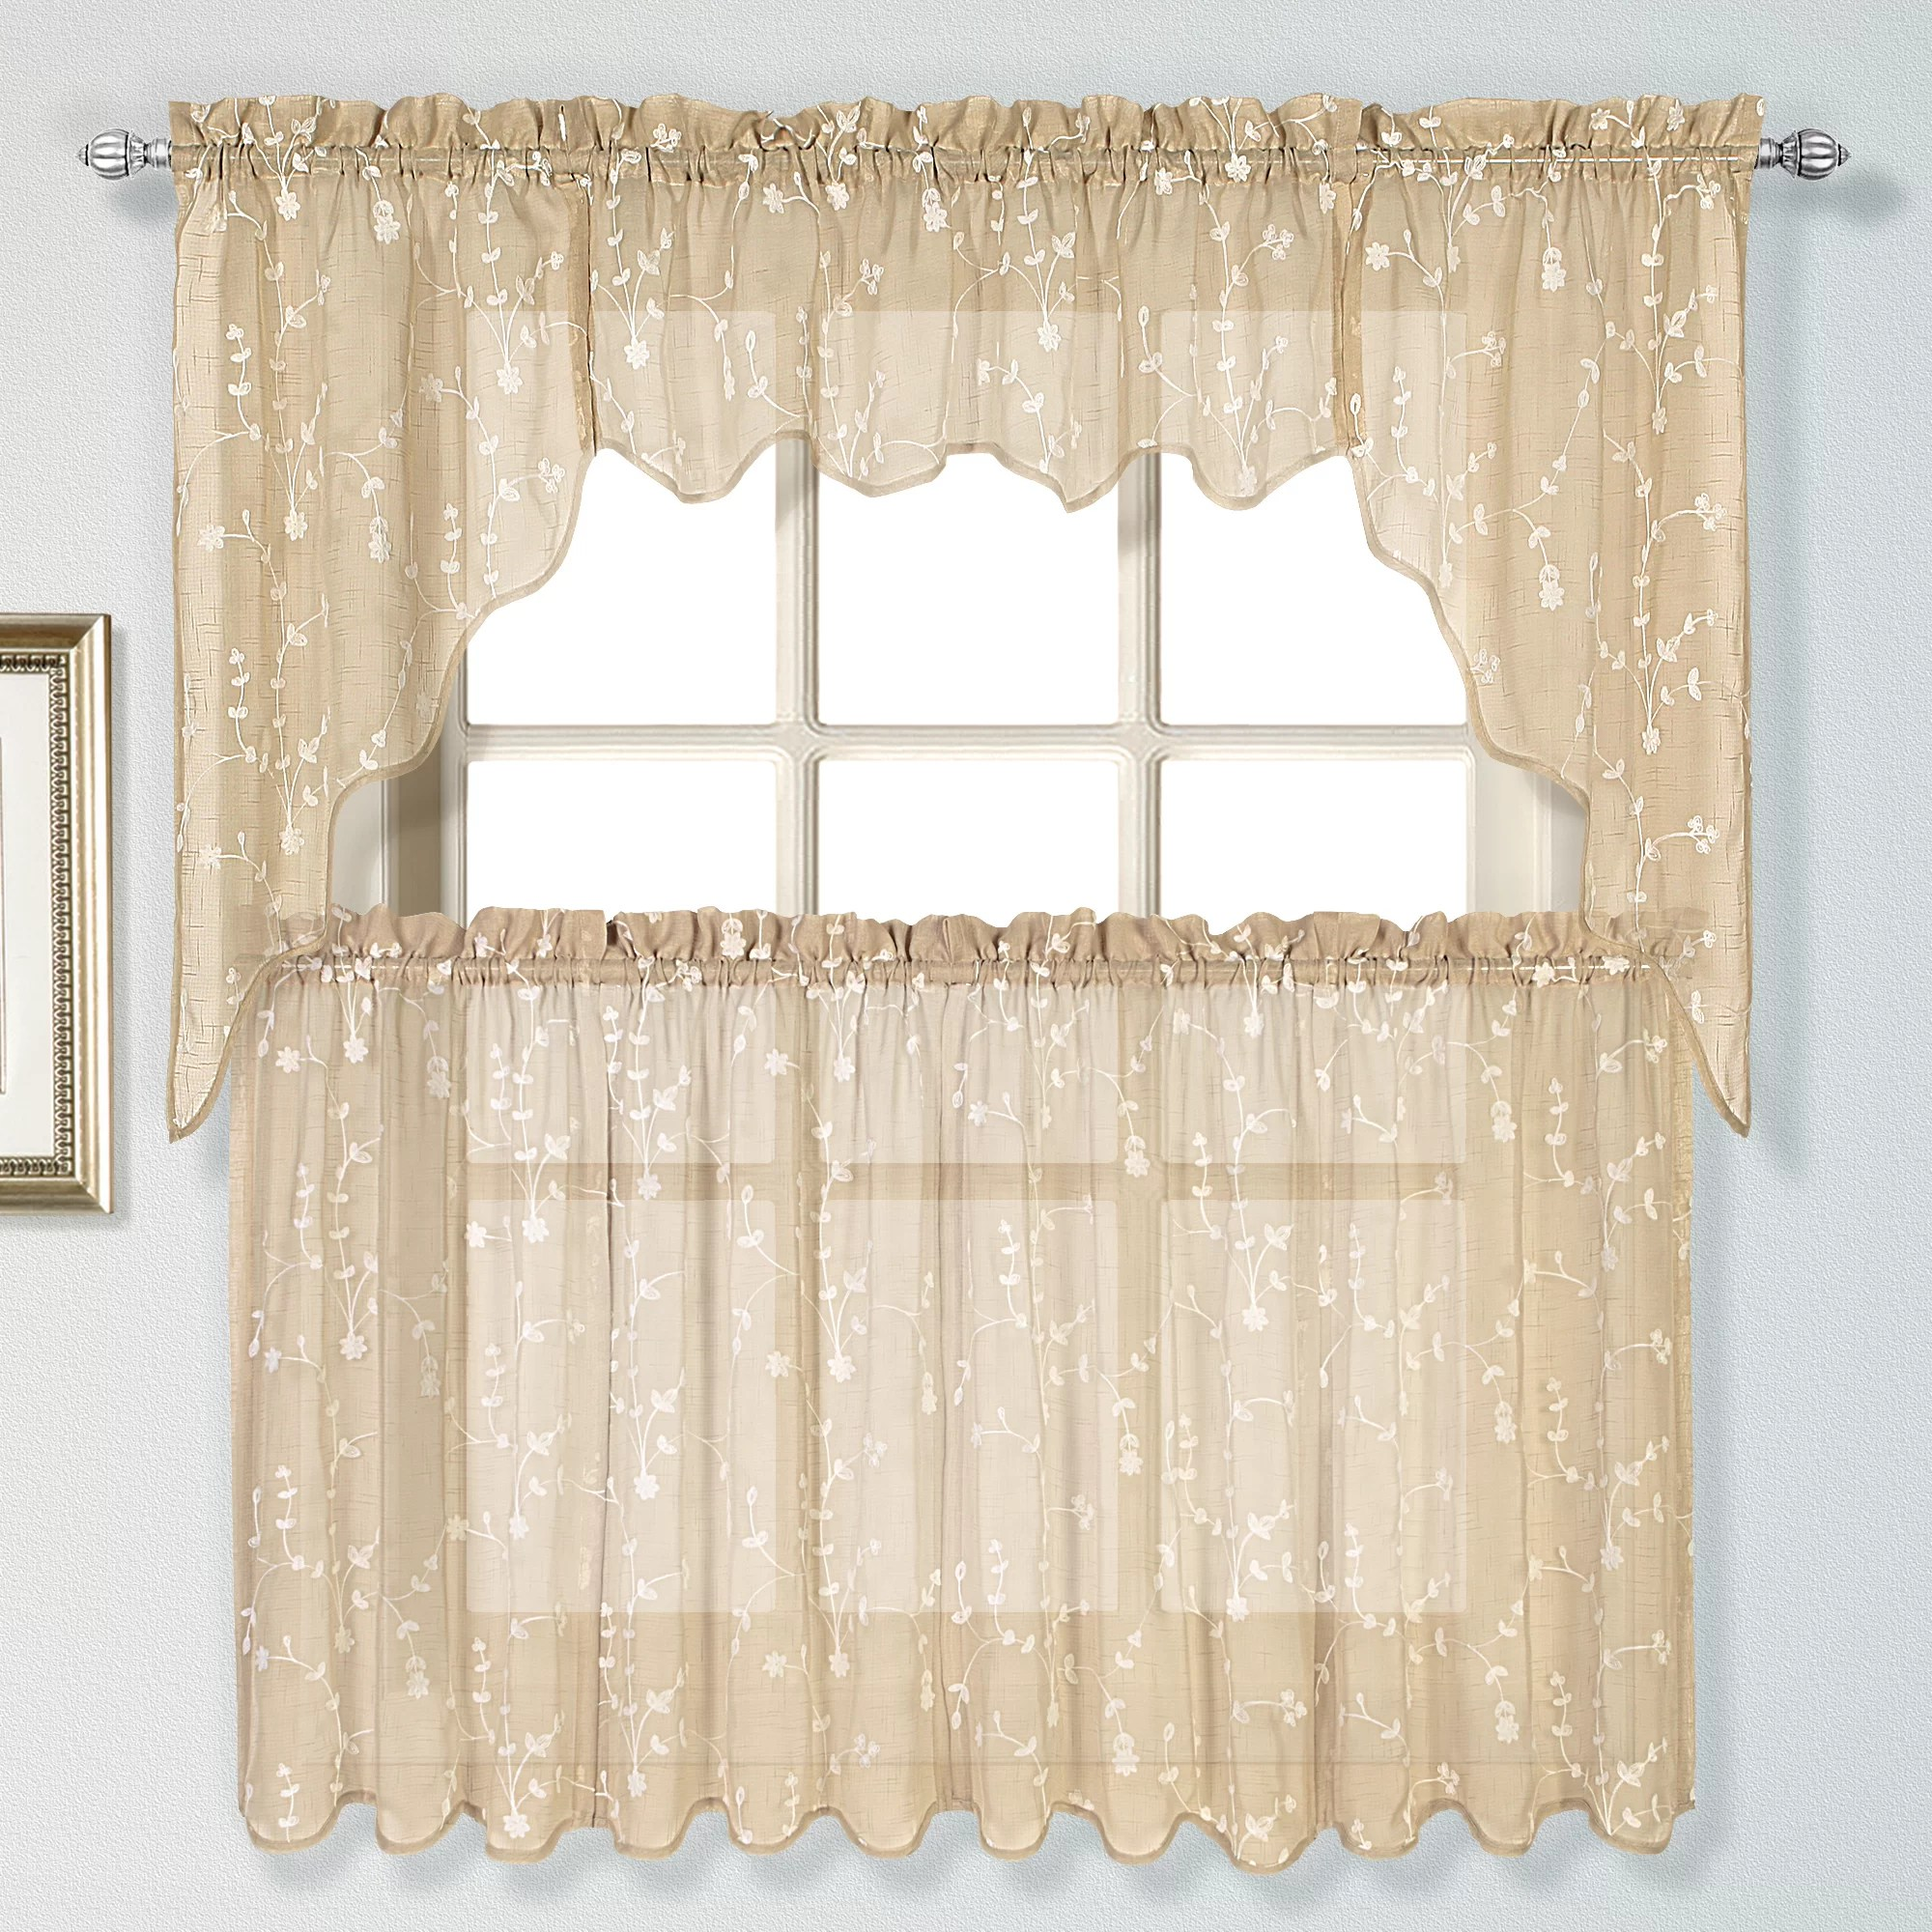 United Curtain Co Savannah Tier Curtain